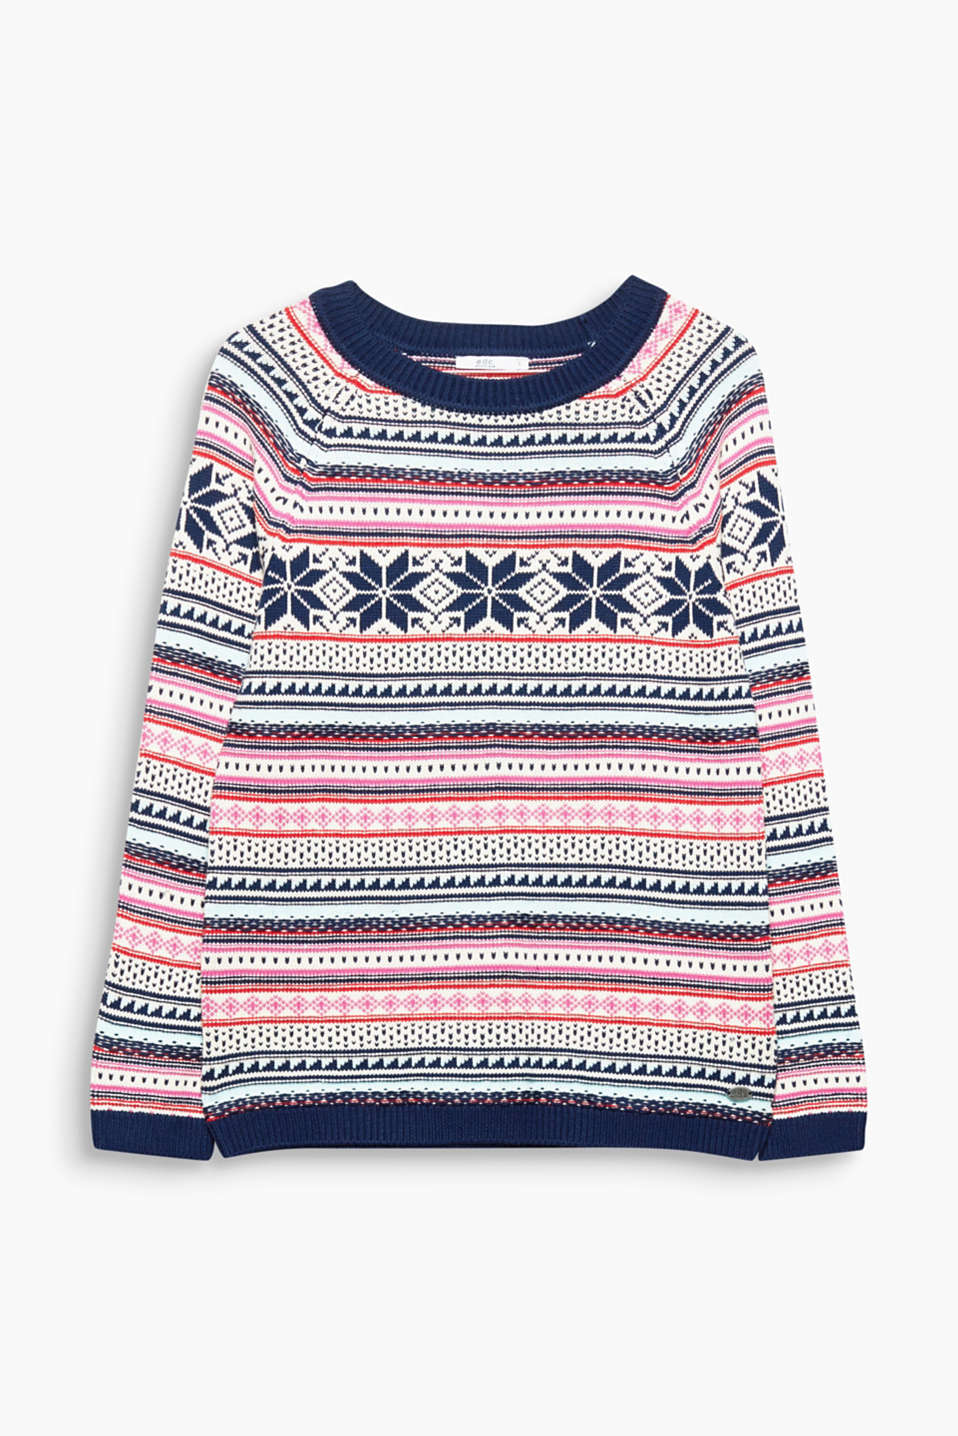 You so need to have this soft jumper with a vibrantly coloured jacquard pattern at the ready for an upbeat winter look!